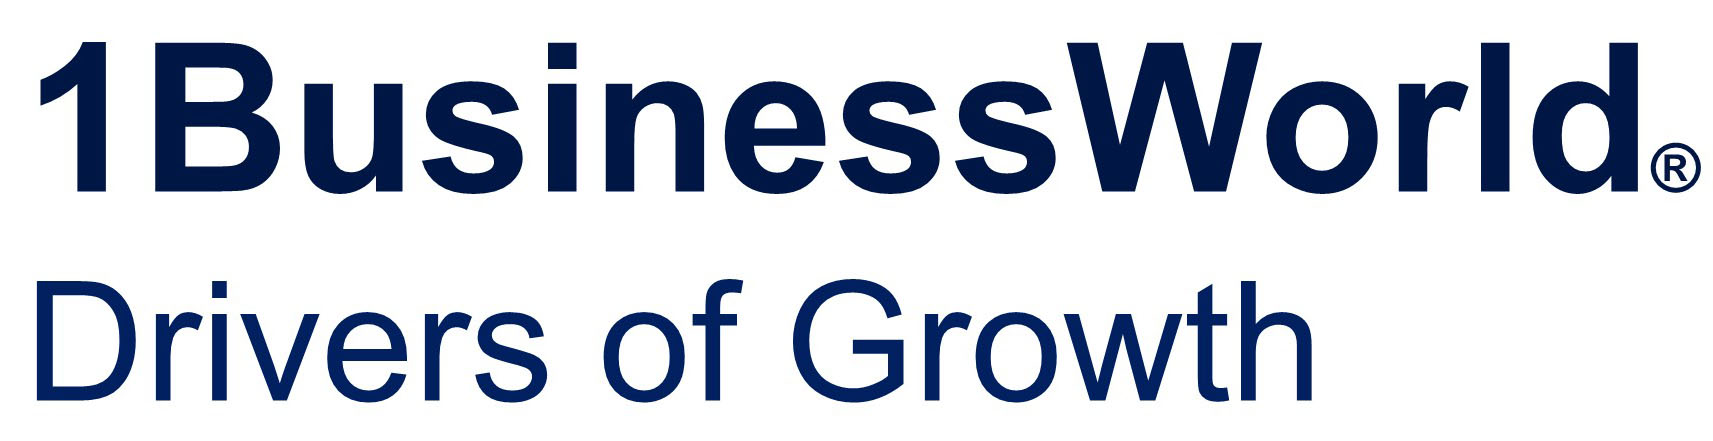 1BusinessWorld Drivers of Growth